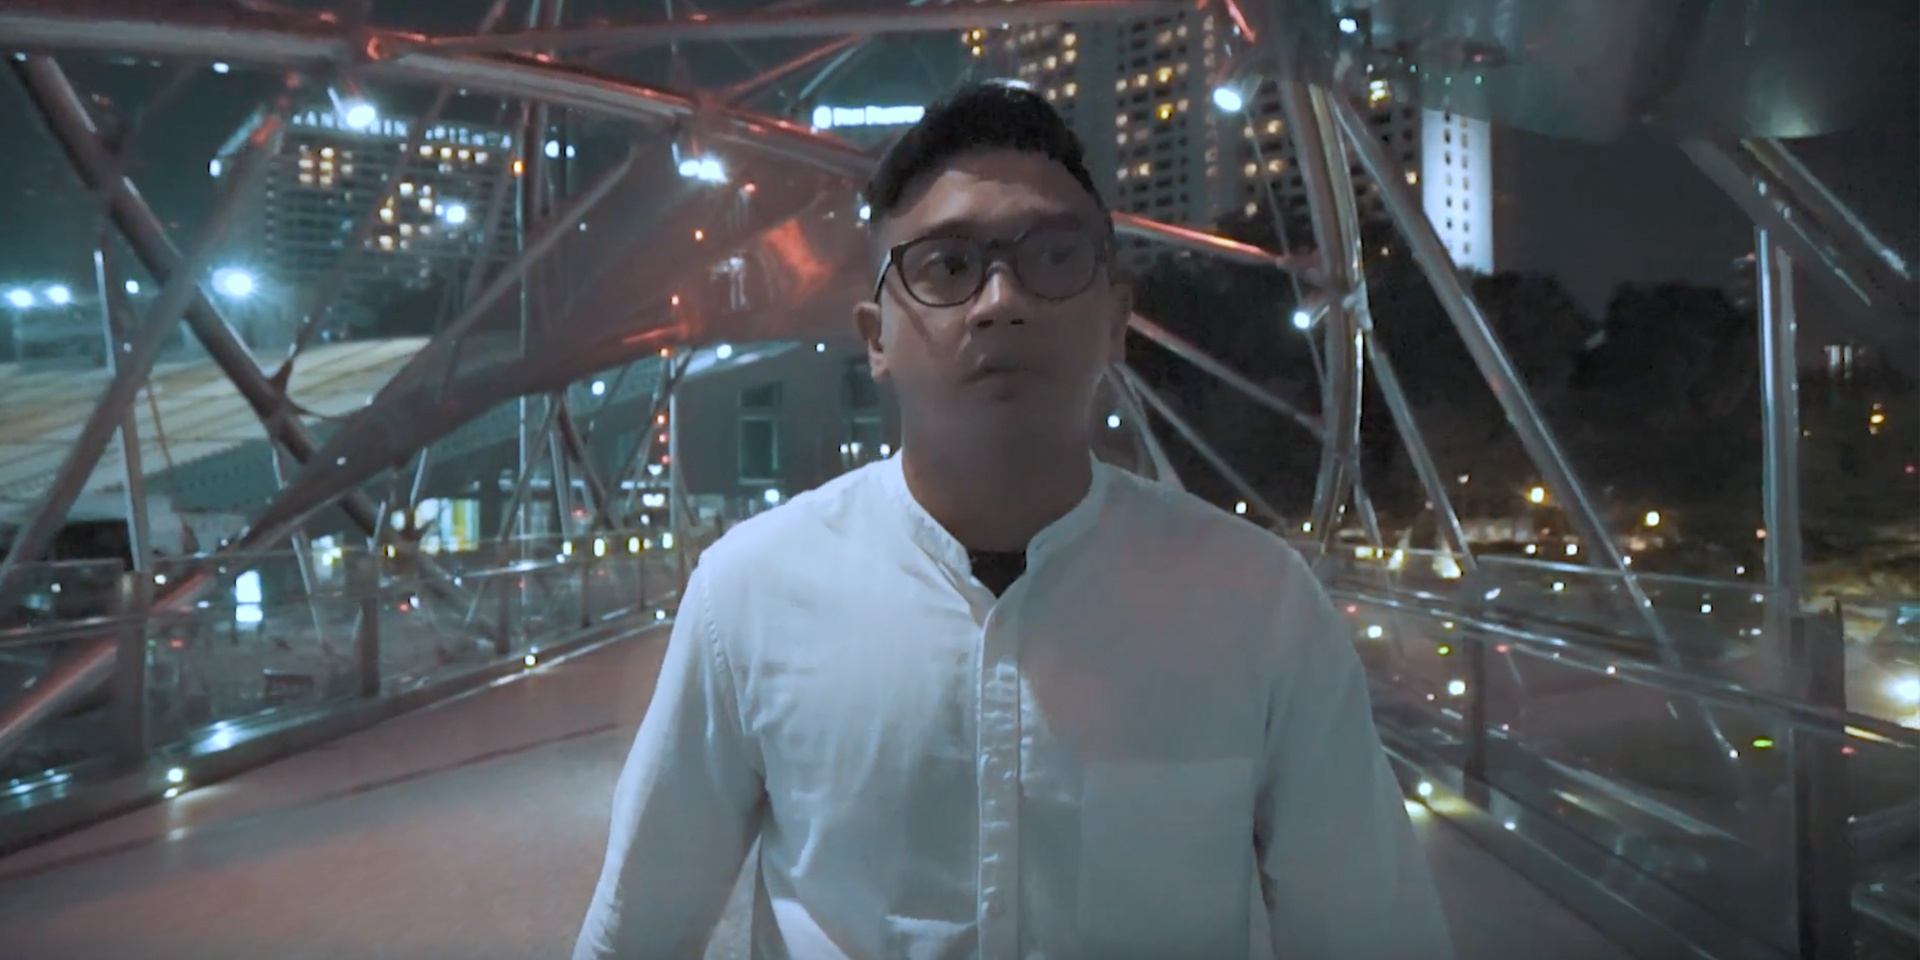 Faraday touches post-breakup healing in new single 'The Great Horizontal' –watch